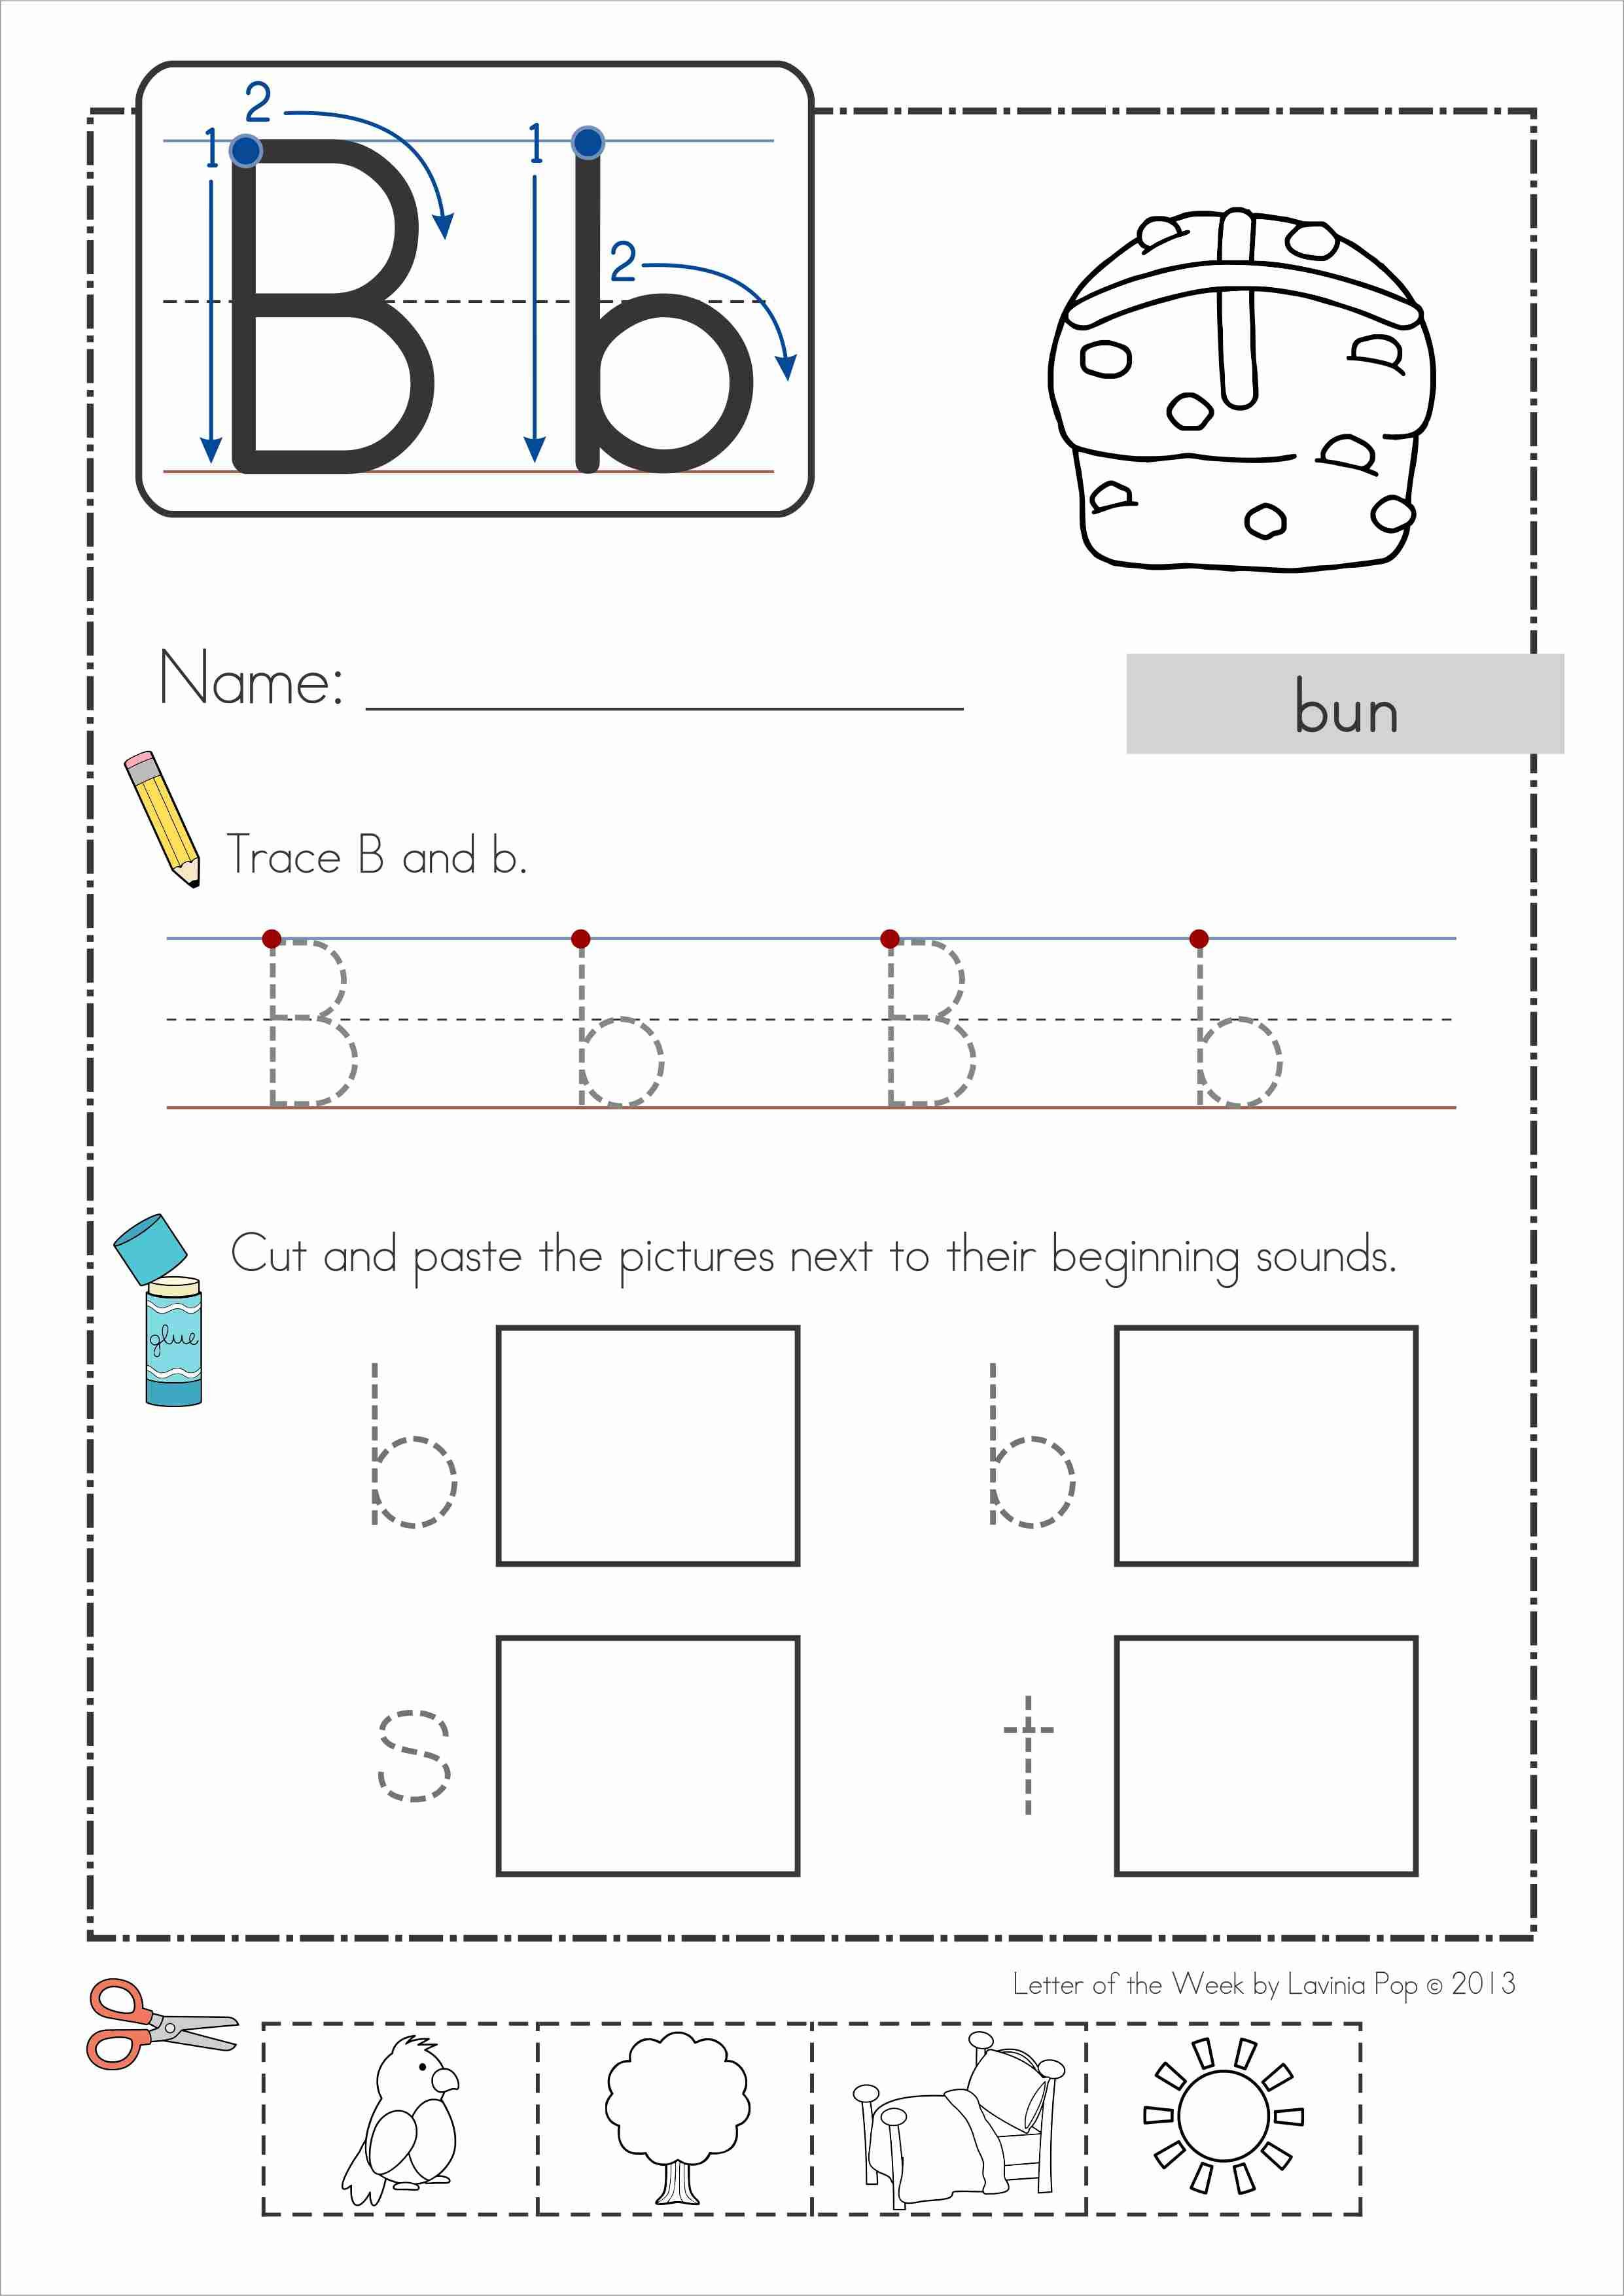 worksheet Jolly Phonics Handwriting Worksheets alphabet phonics letter of the week b handwriting and bb free a huge unit pages with all that you need for curriculum page from t